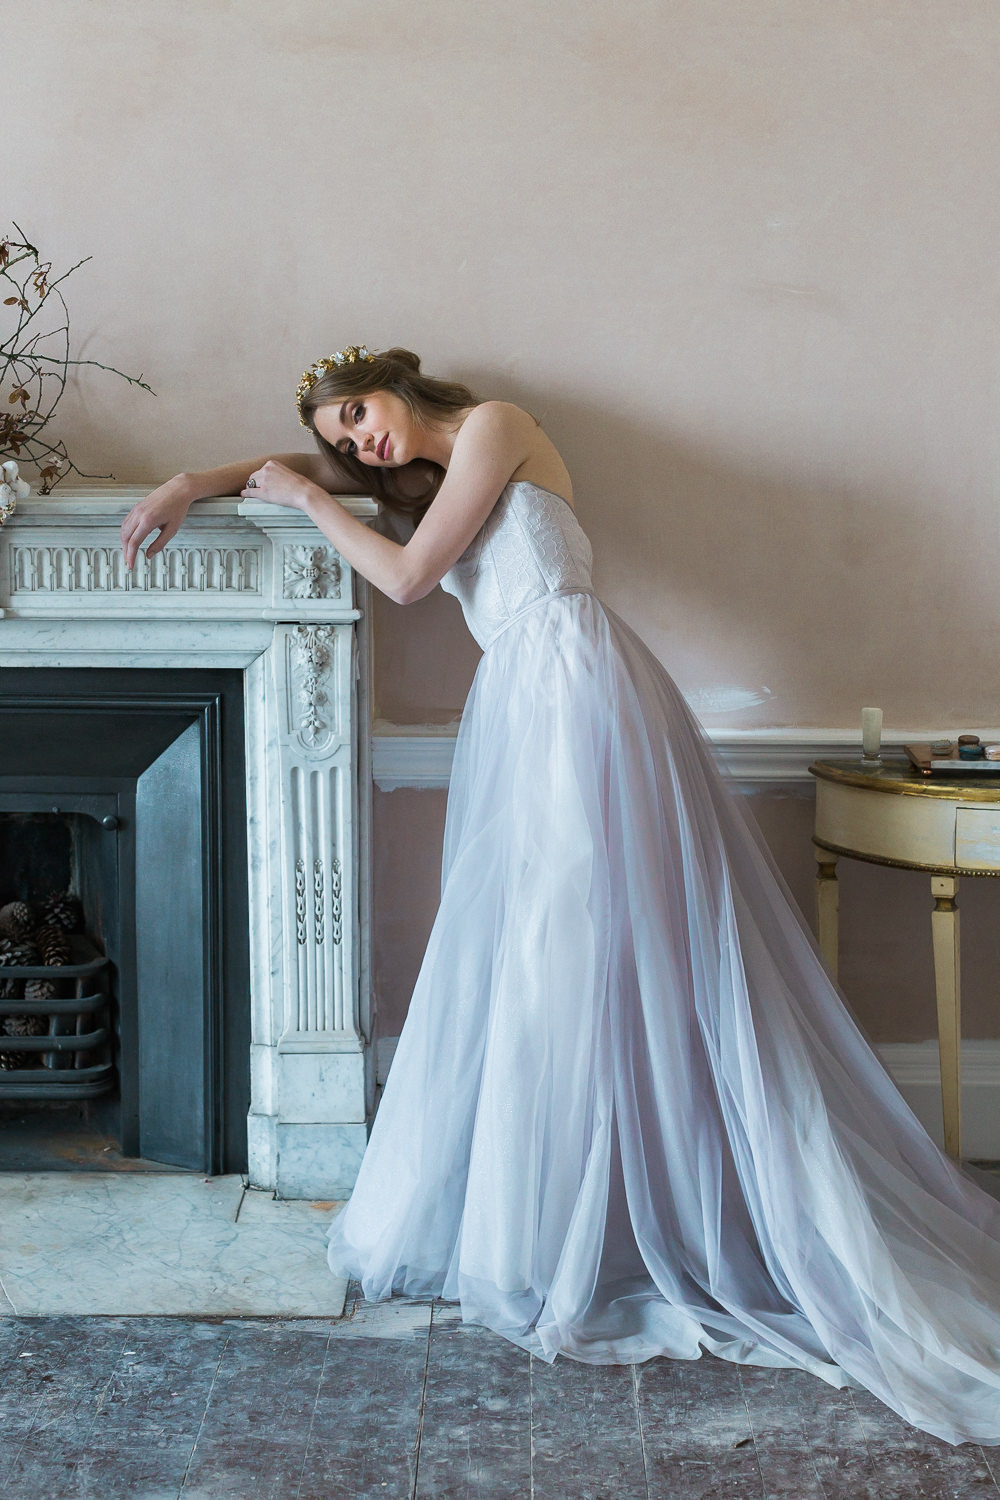 Modern Wabi Sabi Ballet Dance Inspired Editorial Lilac Dress Somerley House Mantelpiece | Romantic Soft Wedding Ideas Siobhan H Photography